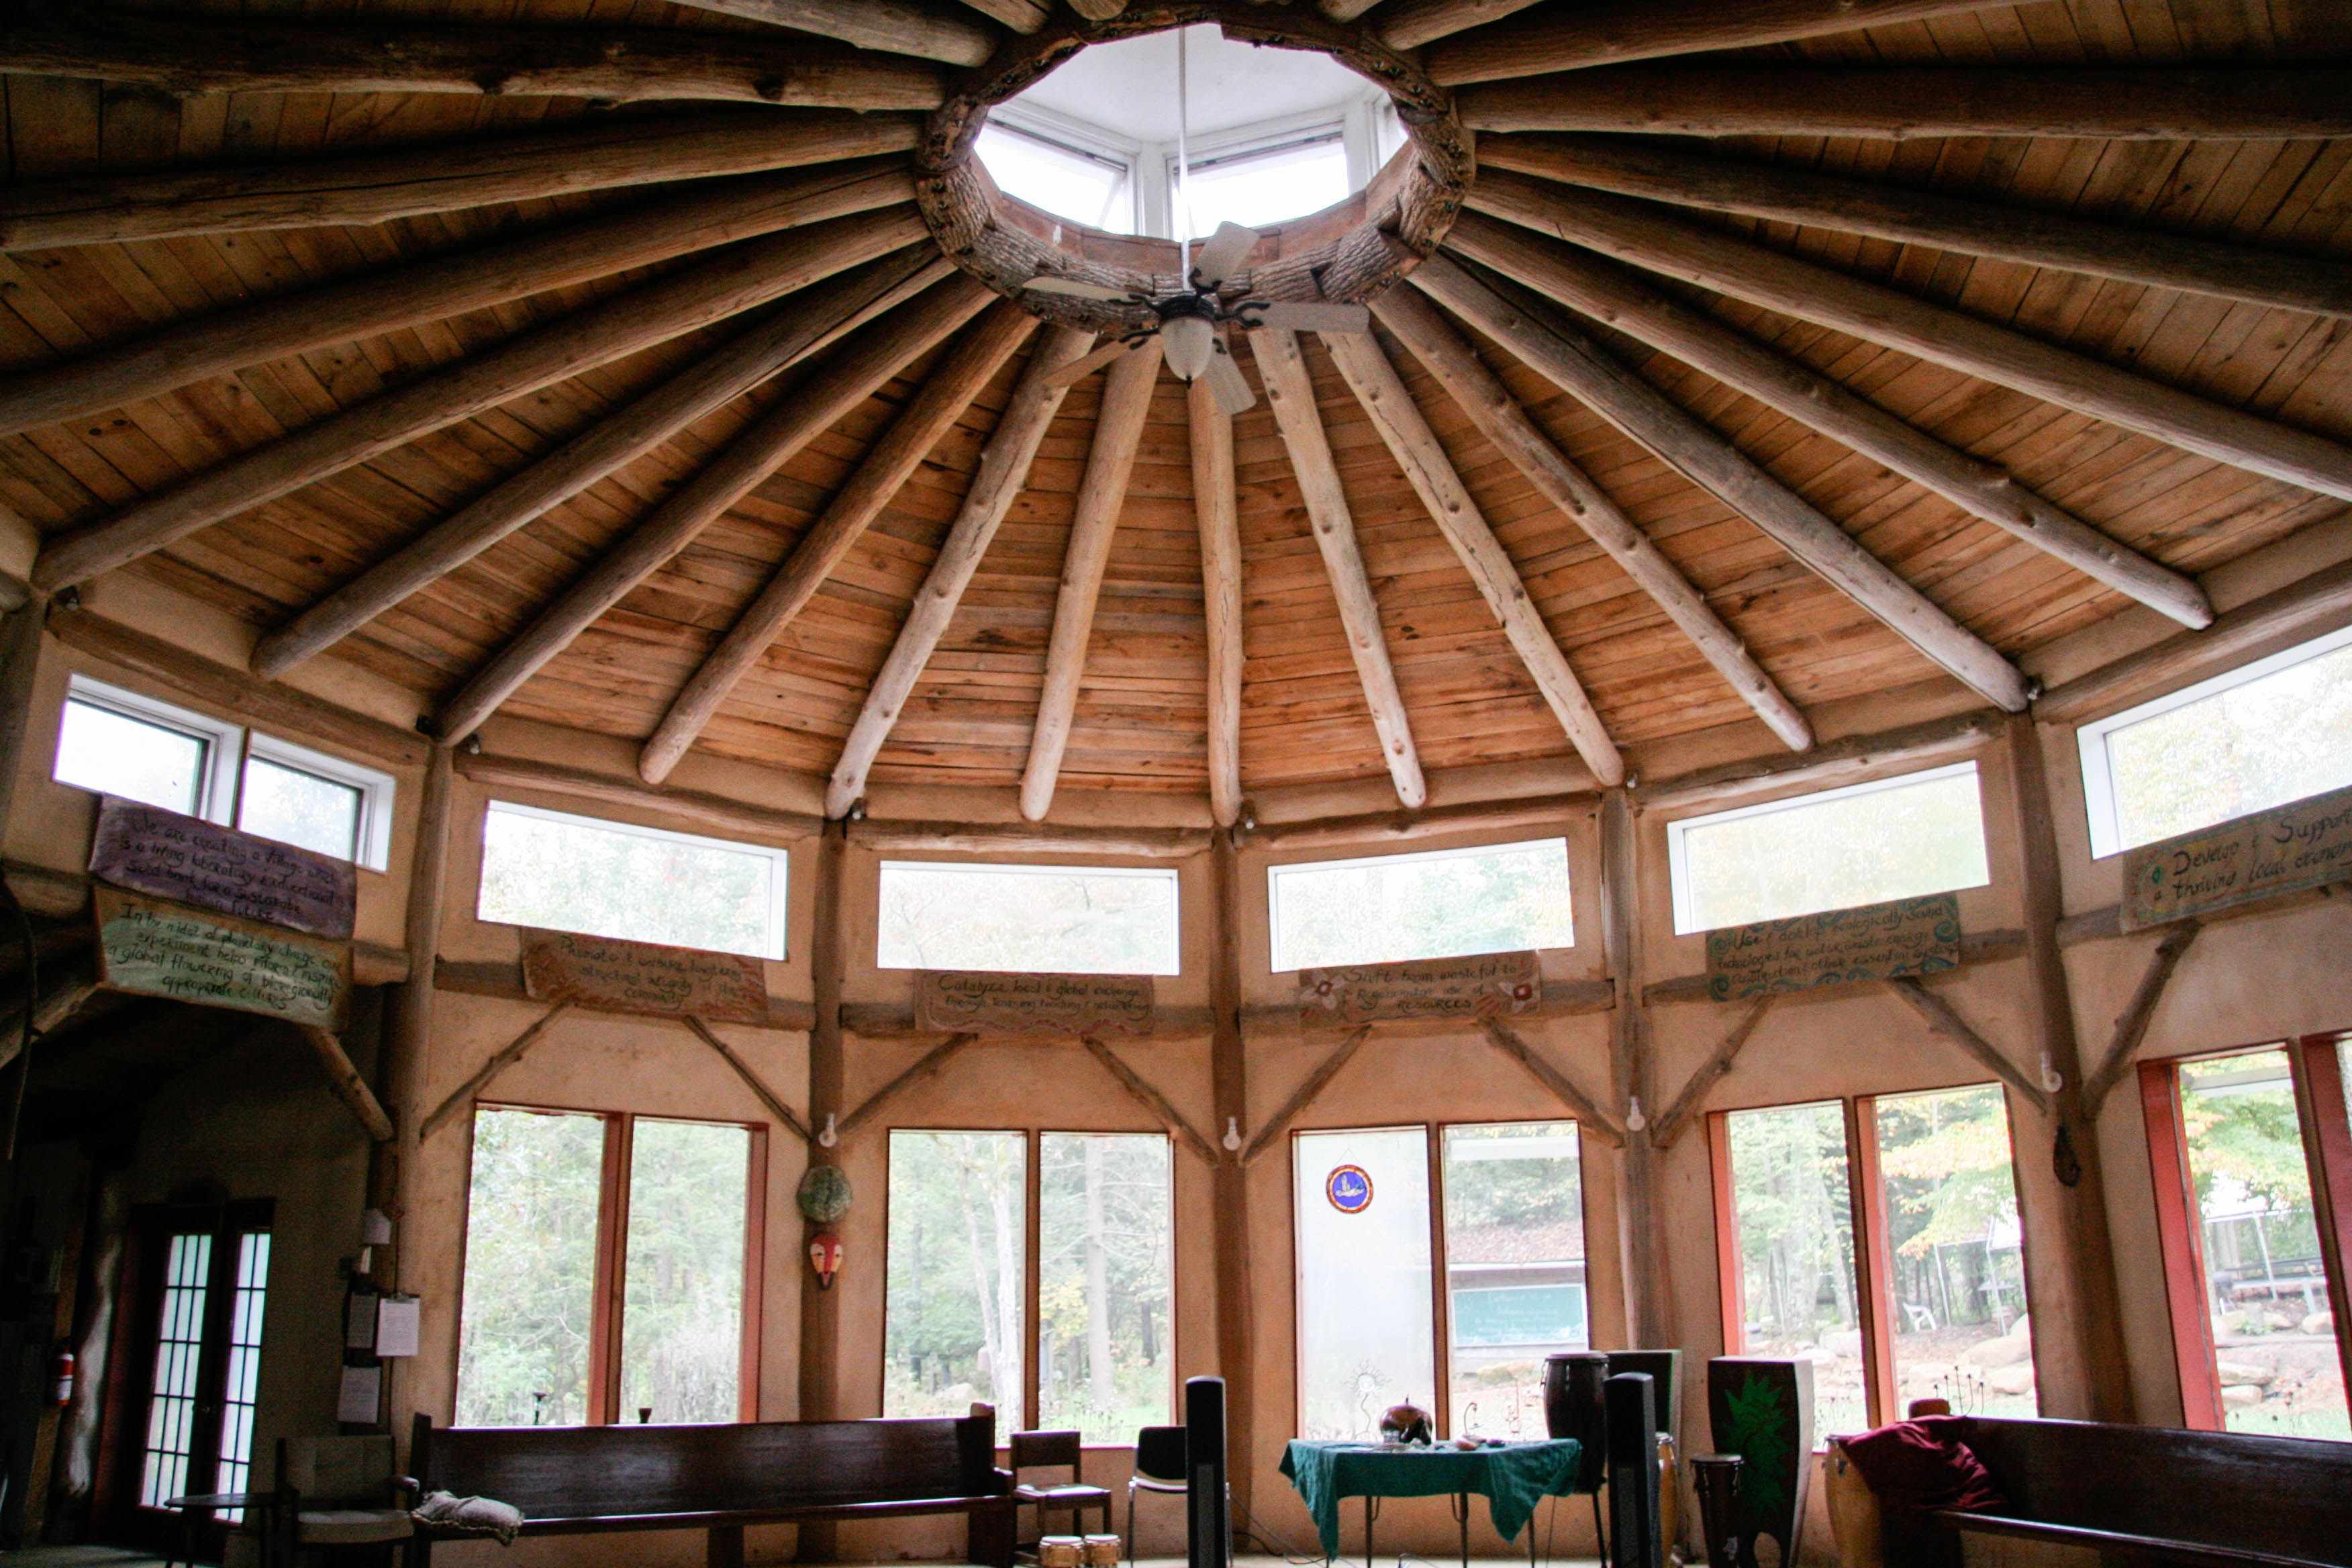 Round Timber Frame House Design on timber frame construction, timber frame bathroom, timber frame ideas, roof house designs, timber frame kitchen, timber frame interior design, timber frame living room, construction house designs, timber frame bedroom, timber frame books, post frame house designs, timber frame ceiling, timber frame home, timber frame lighting, landscaping house designs, timber home designs, timber frame cottage, timber frame landscaping, timber frame furniture, timber frame additions,